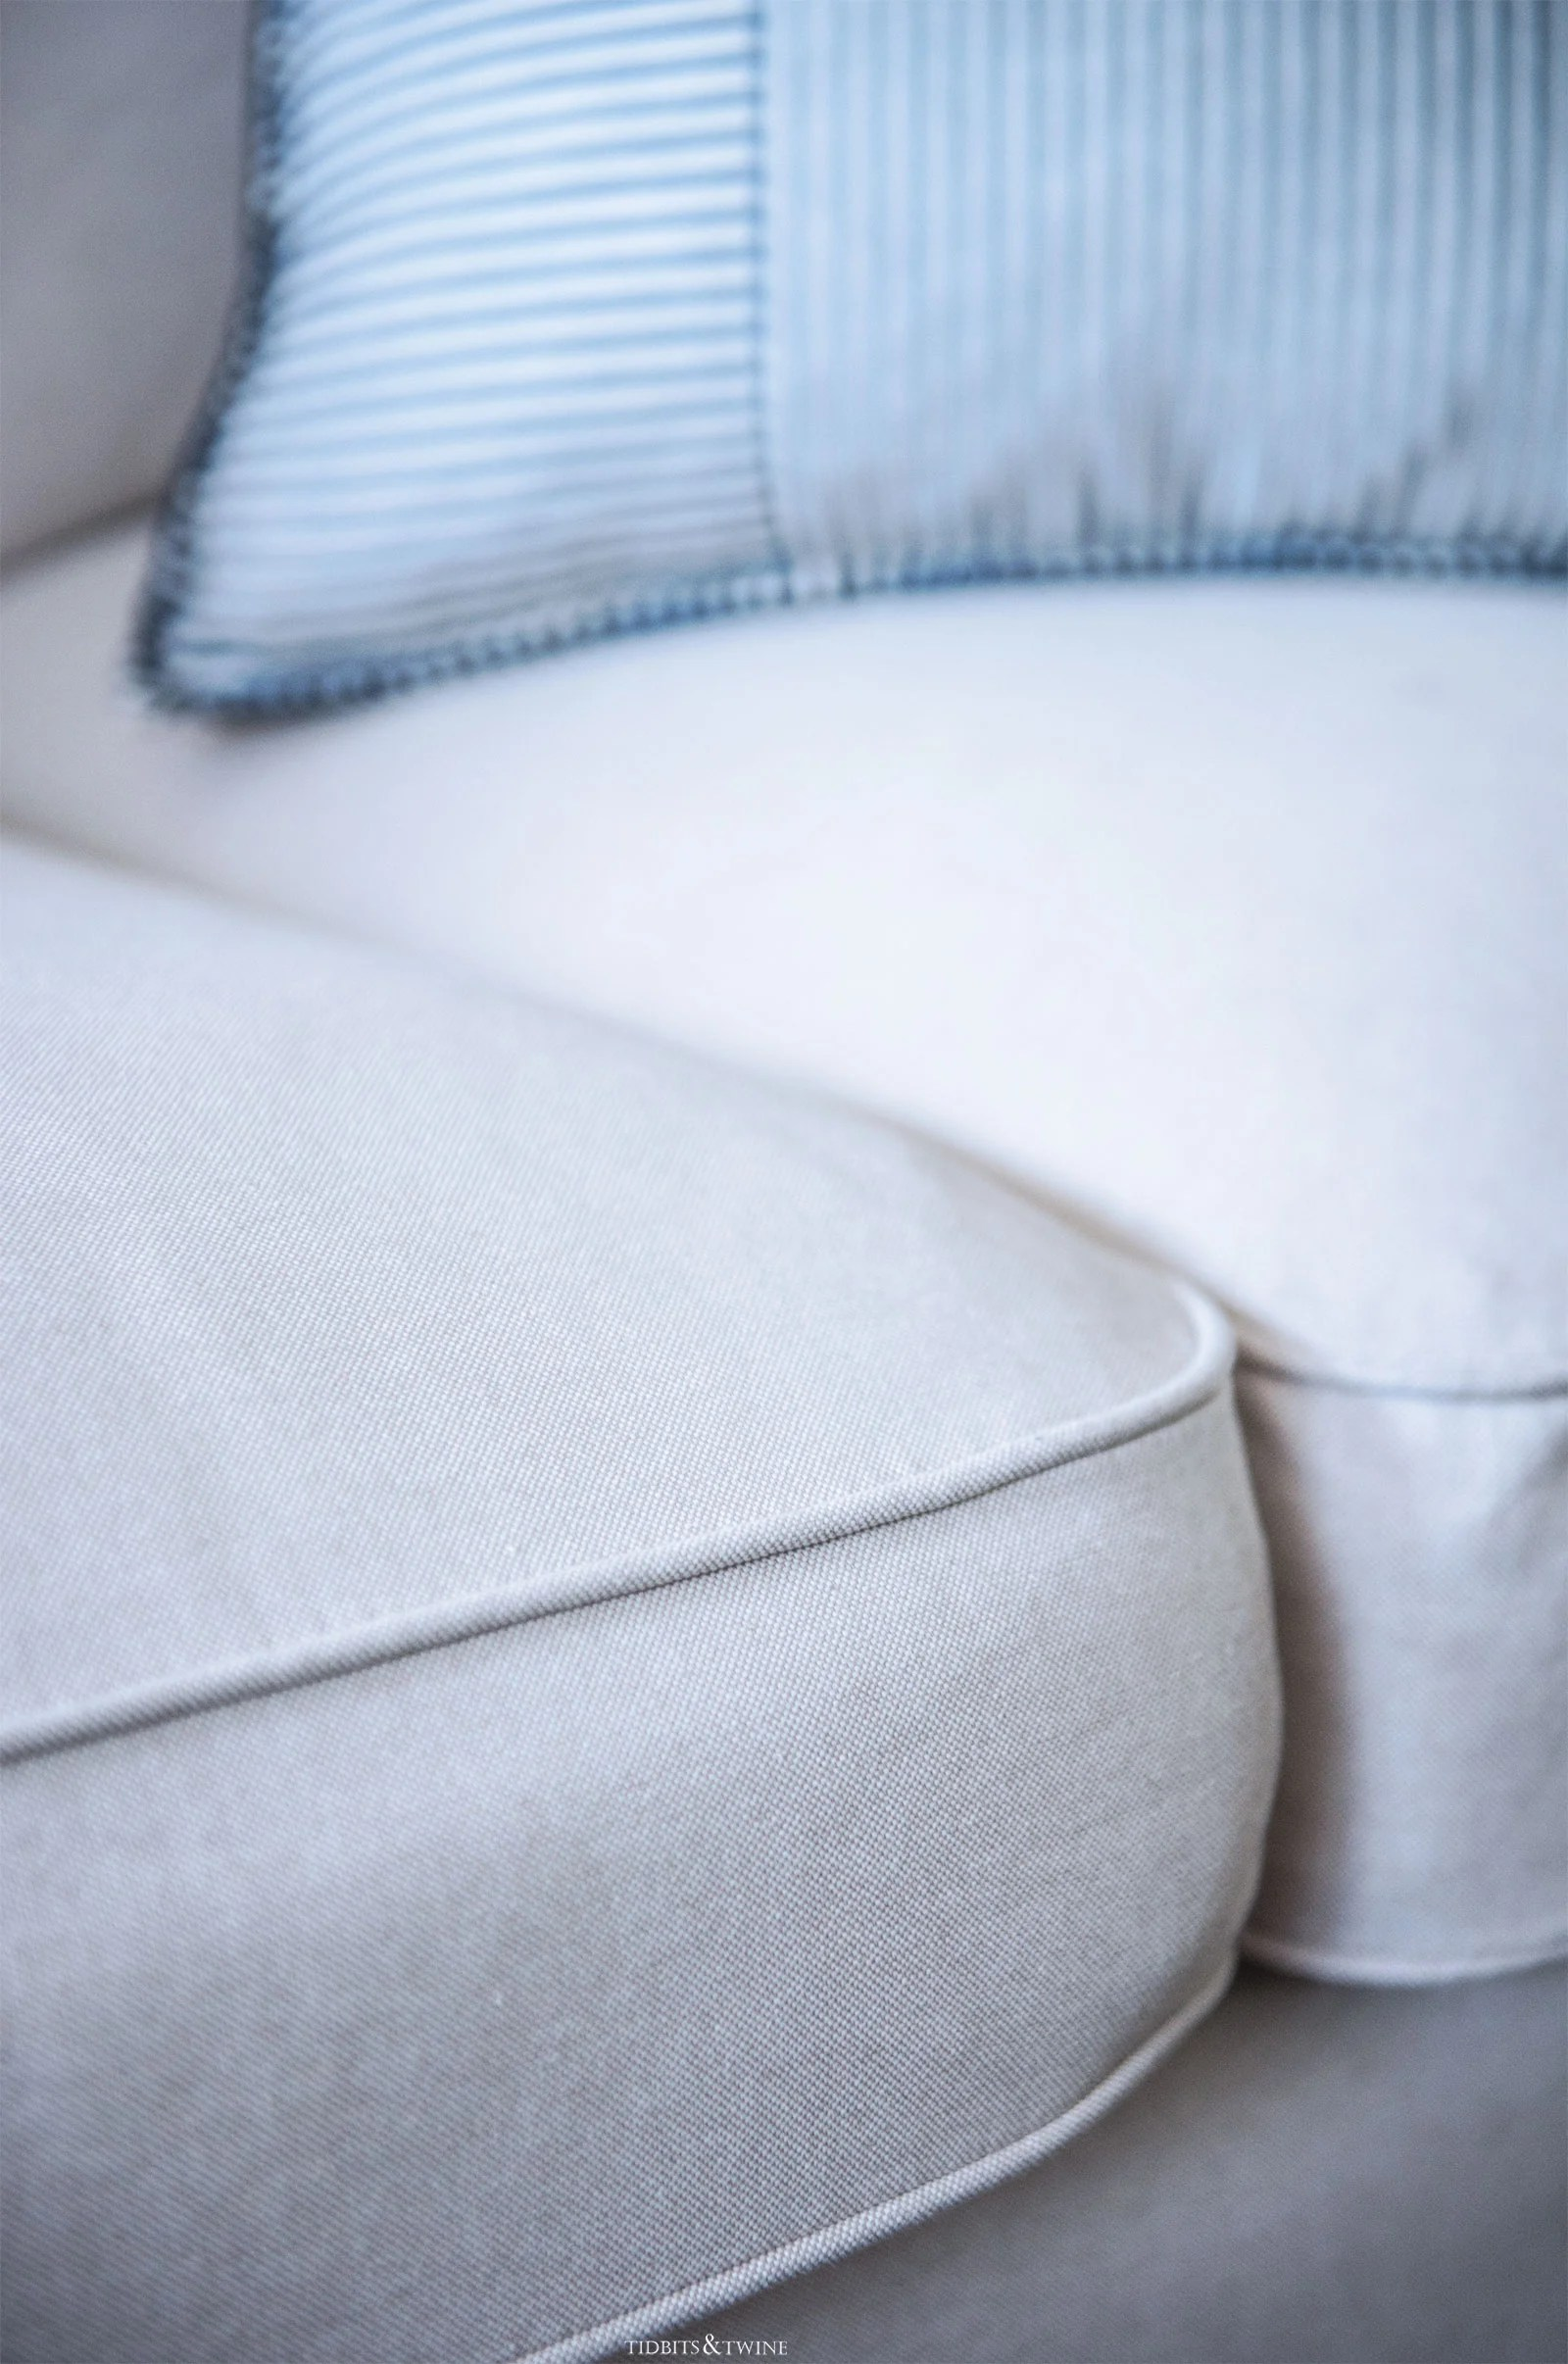 Ektorp Sofa Vittaryd White An Honest Review Of The Ikea Ektorp Sectional Sofa Tidbits Twine